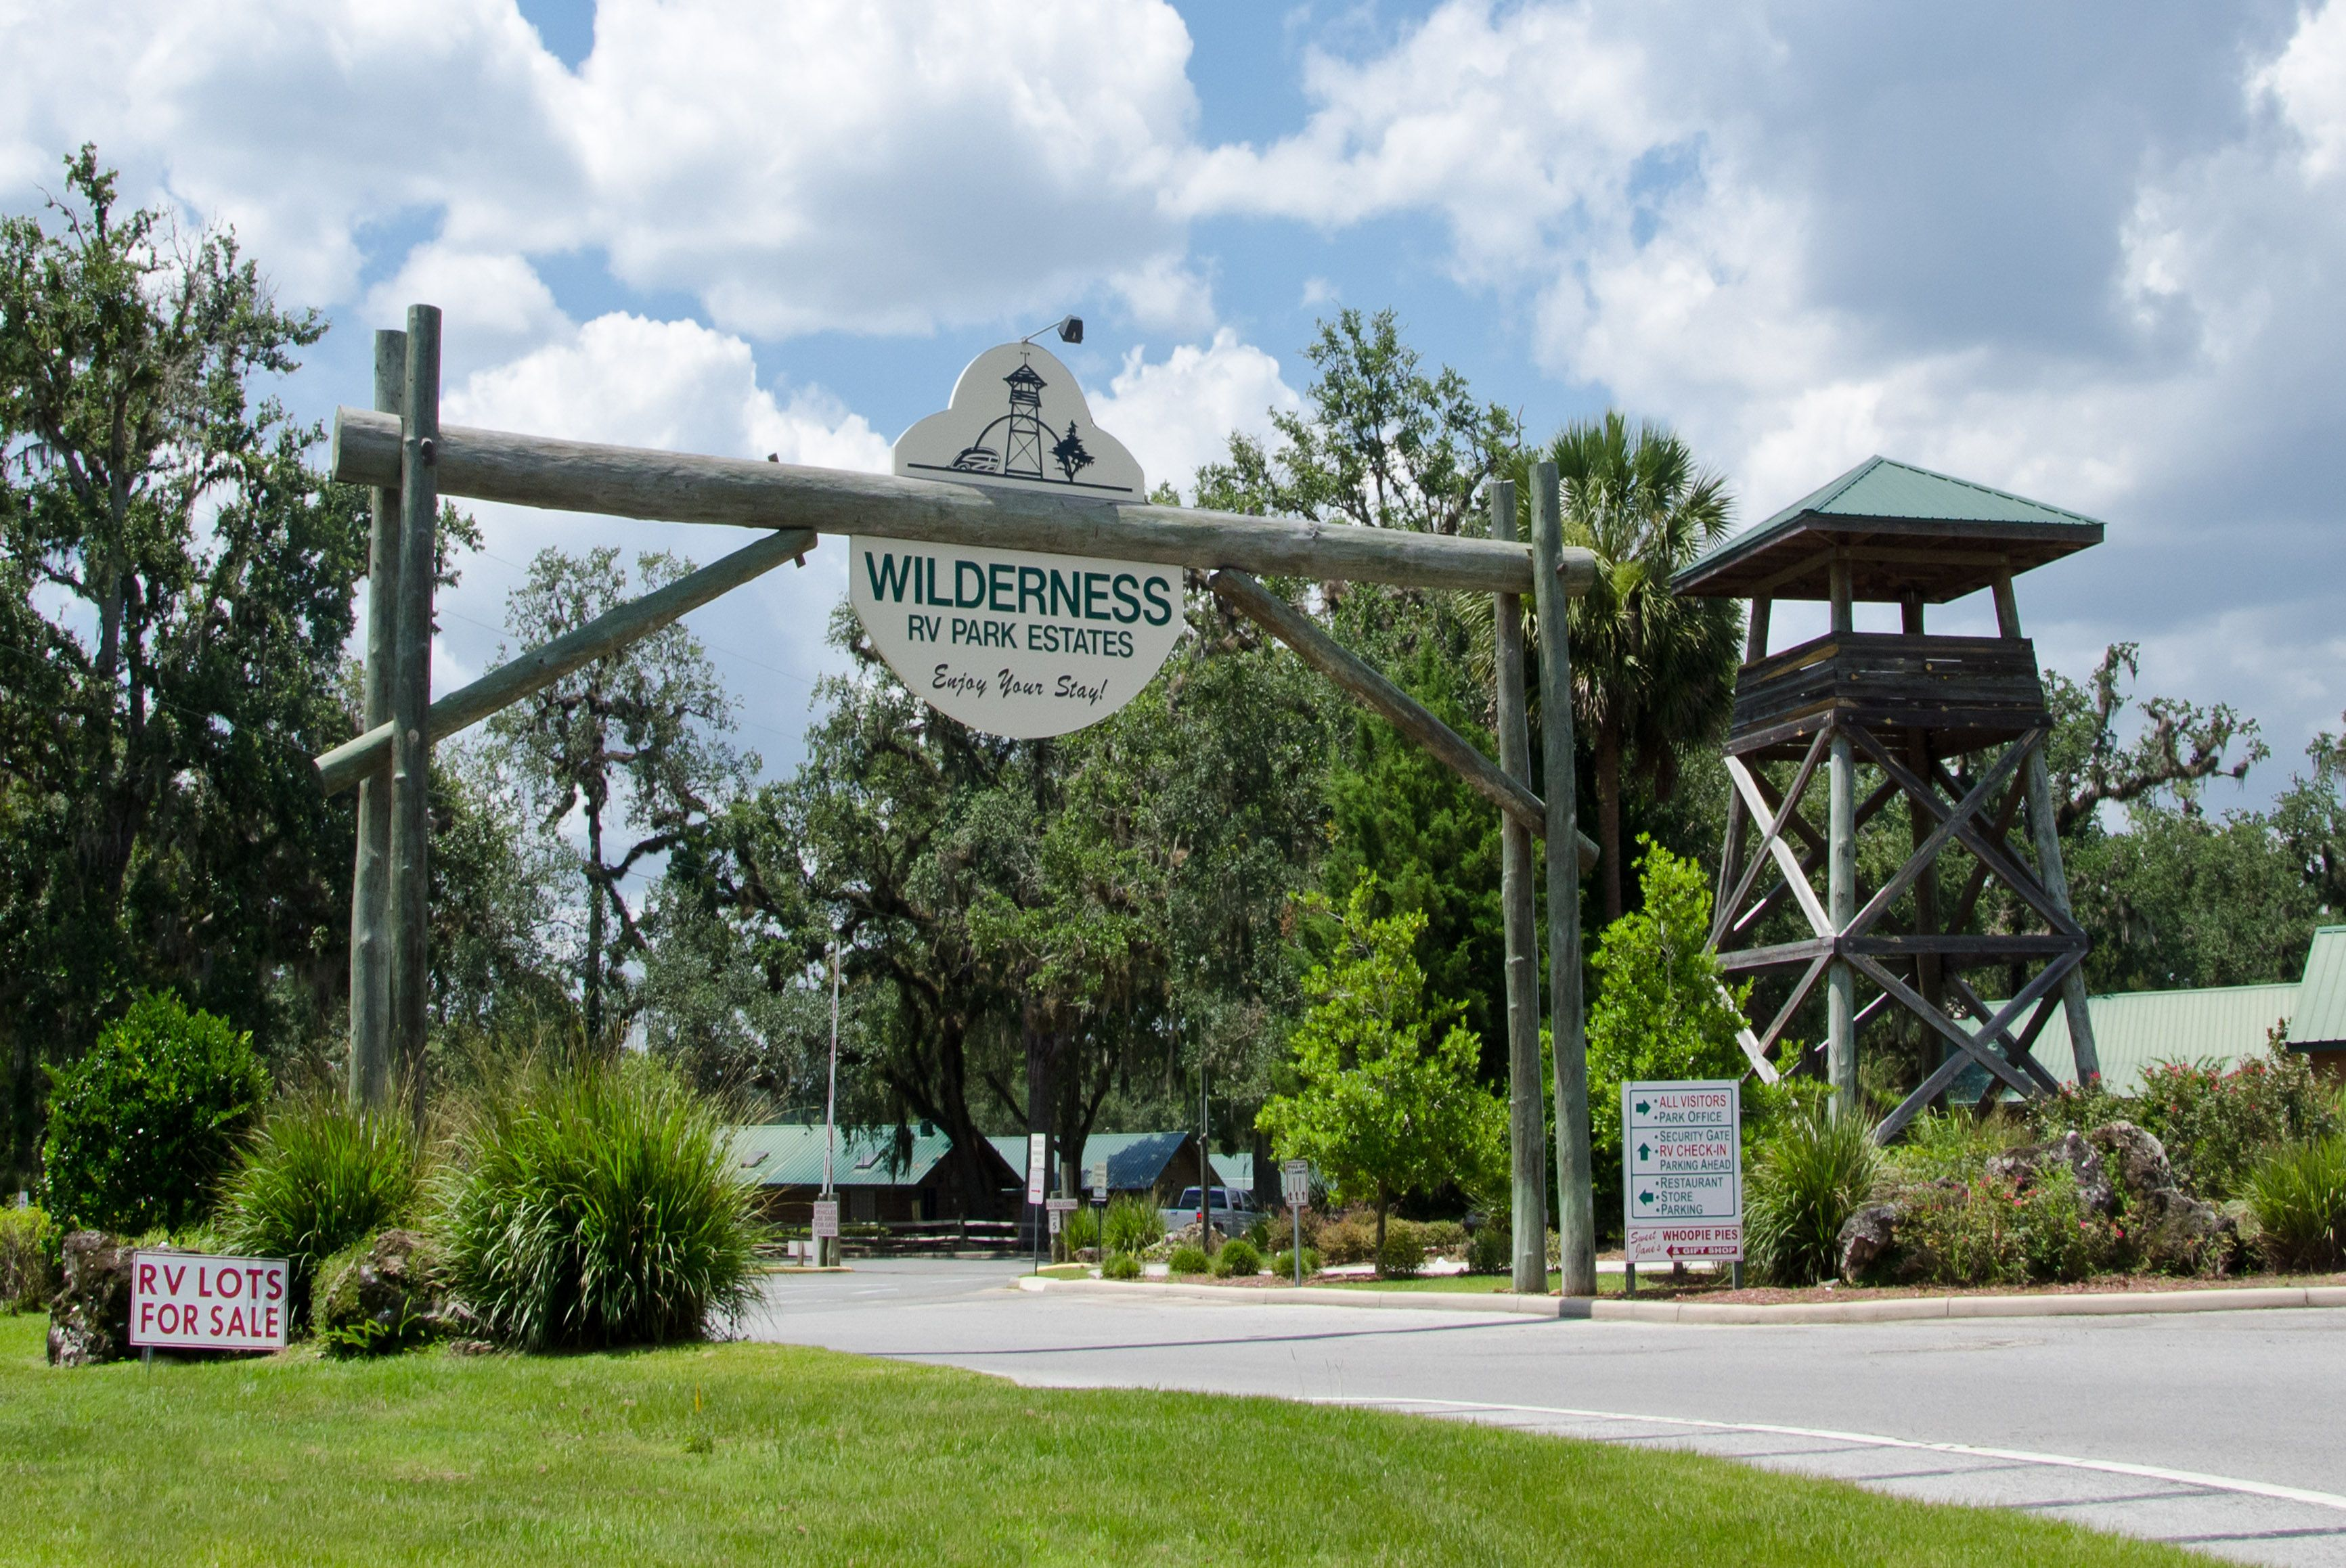 Welcome To Wilderness Rv Resorts At Silver Springs Florida Fl Wilderness Resort Camping Resort Florida Campgrounds